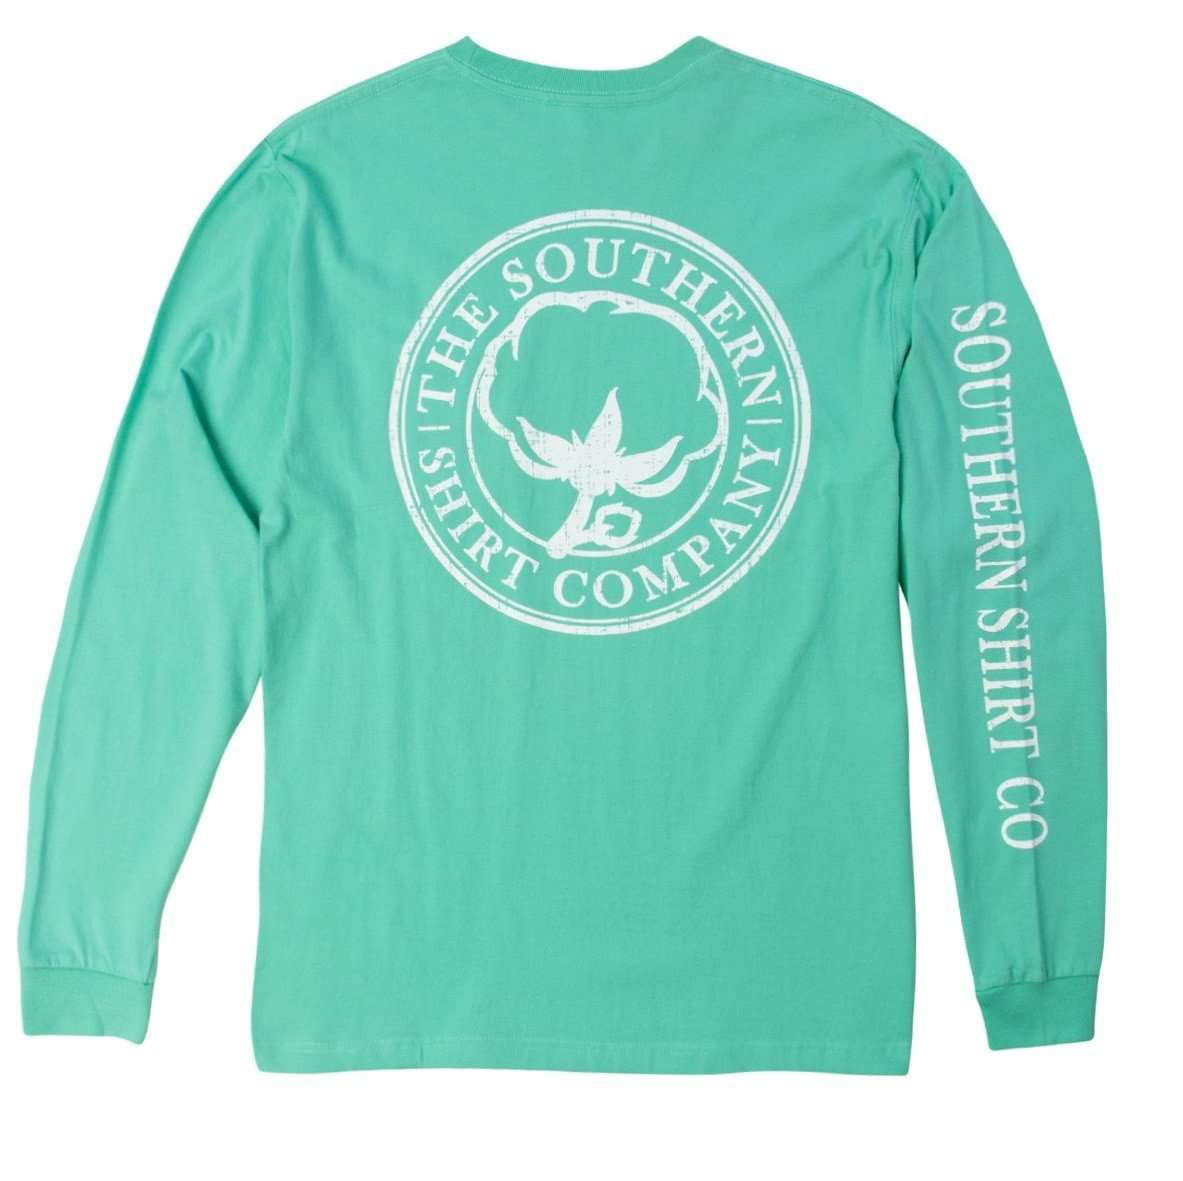 Southern shirt company seaside logo long sleeve tee in for Women s company logo shirts